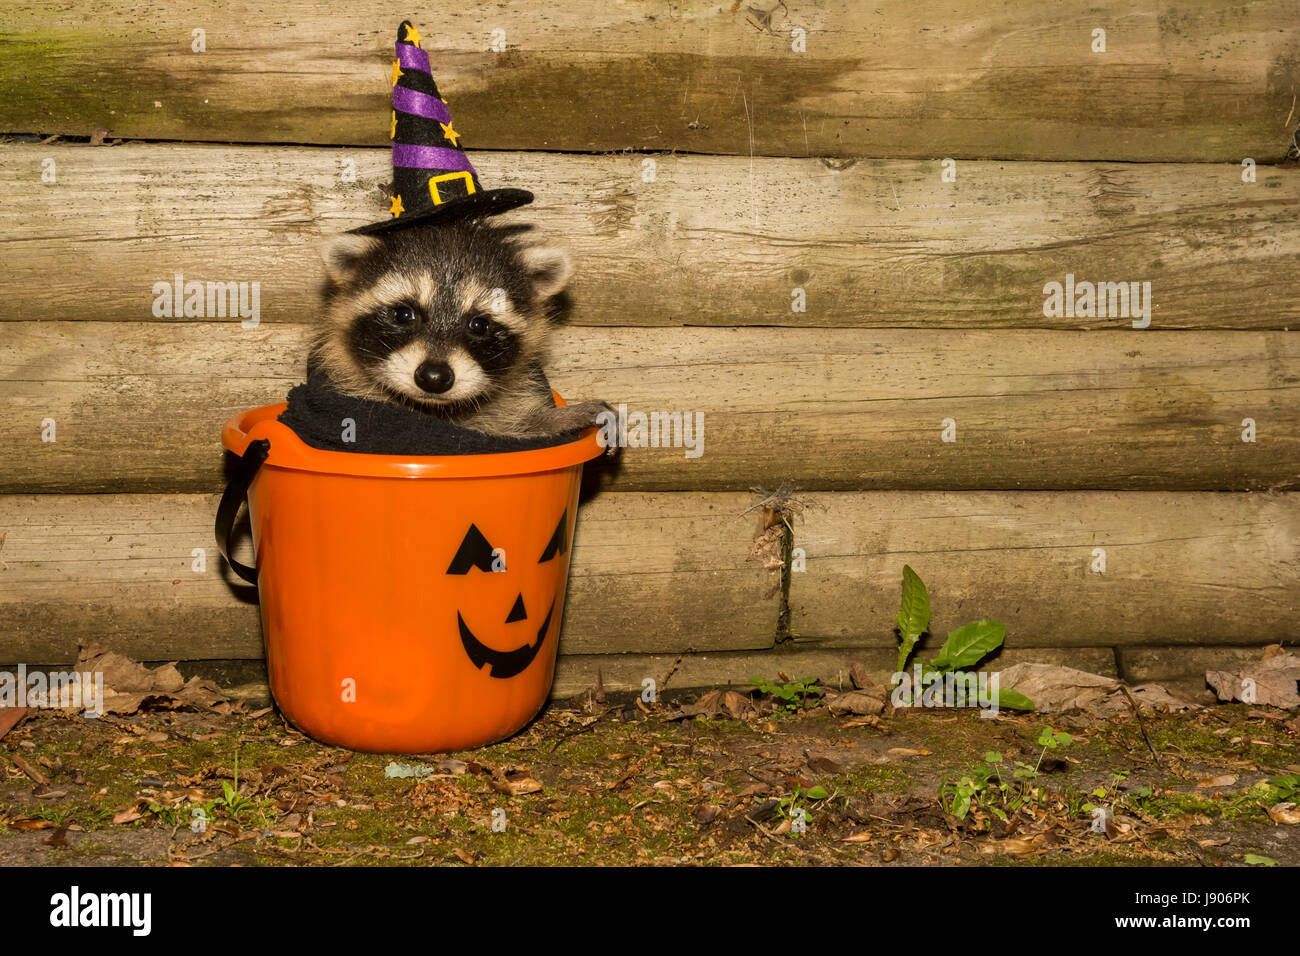 halloween baby raccoon wearing a costume hiding in a candy bucket